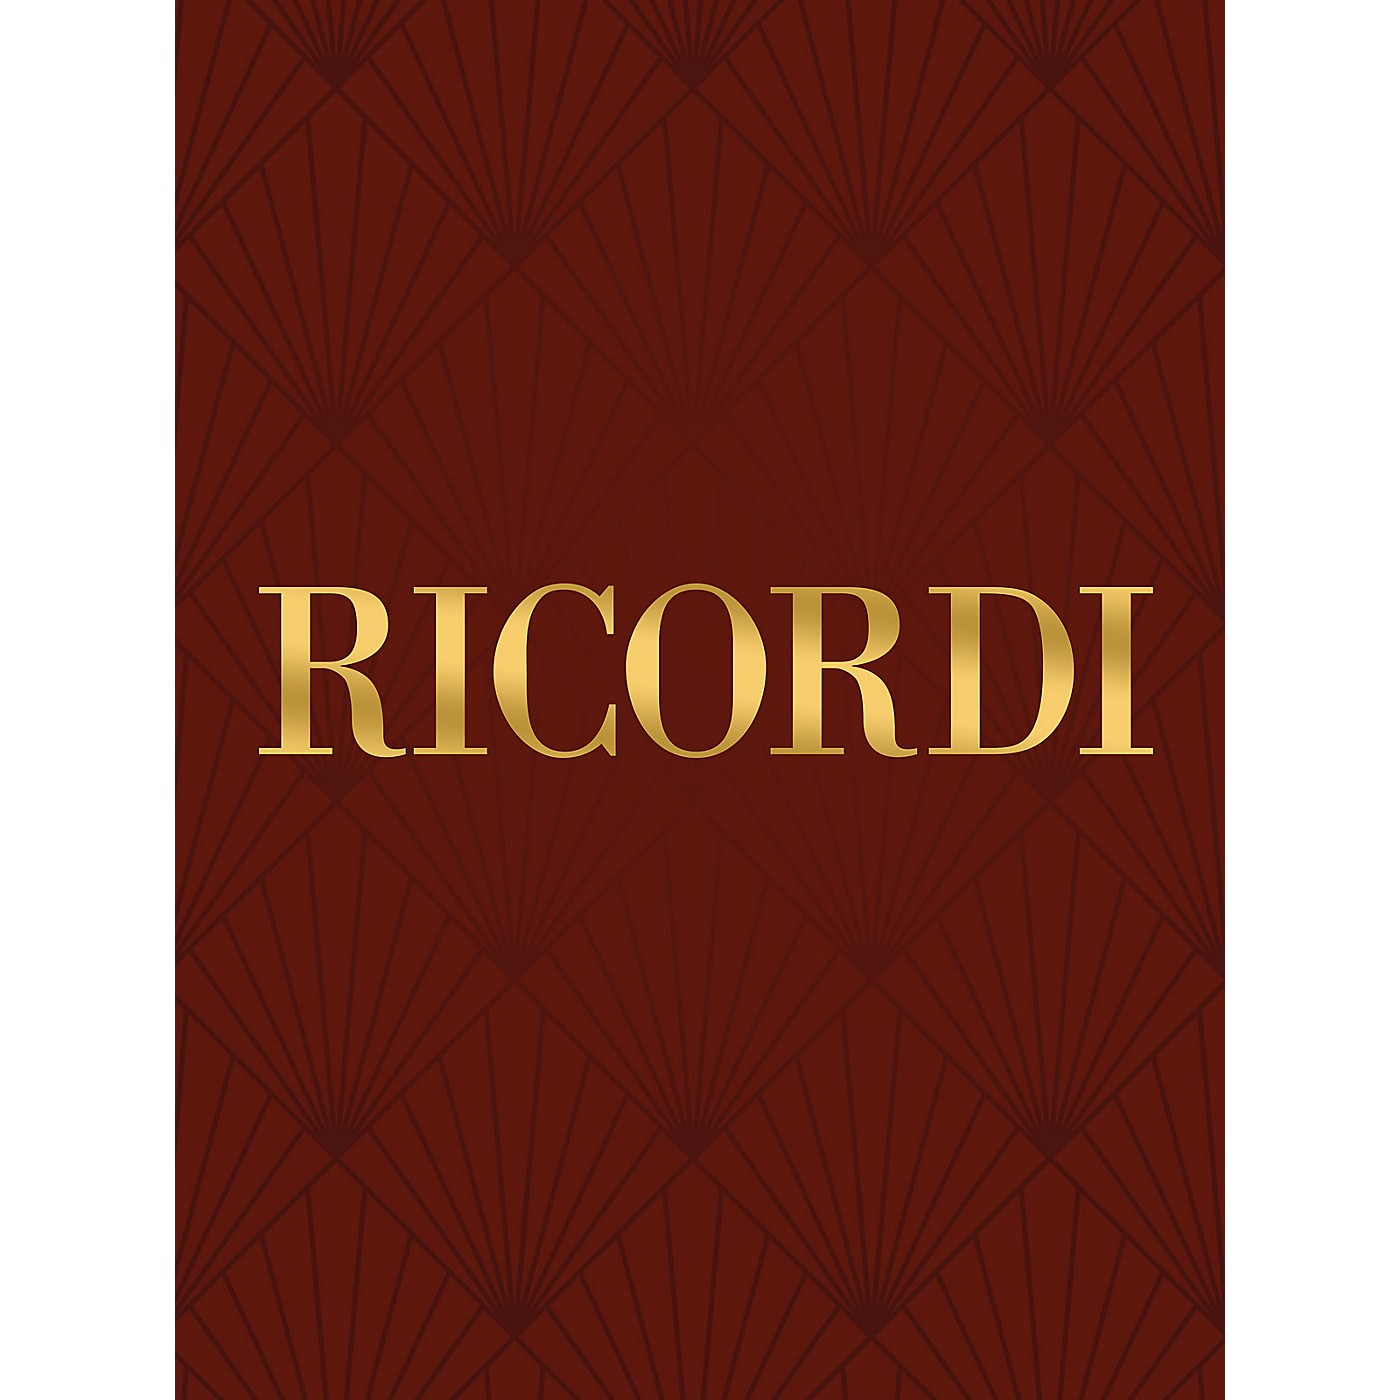 Ricordi 24 Vocalizzi Op. 81 Soprano, Mezzo-Soprano or Tenor Vocal Method Series Composed by Heinrich Panofka thumbnail